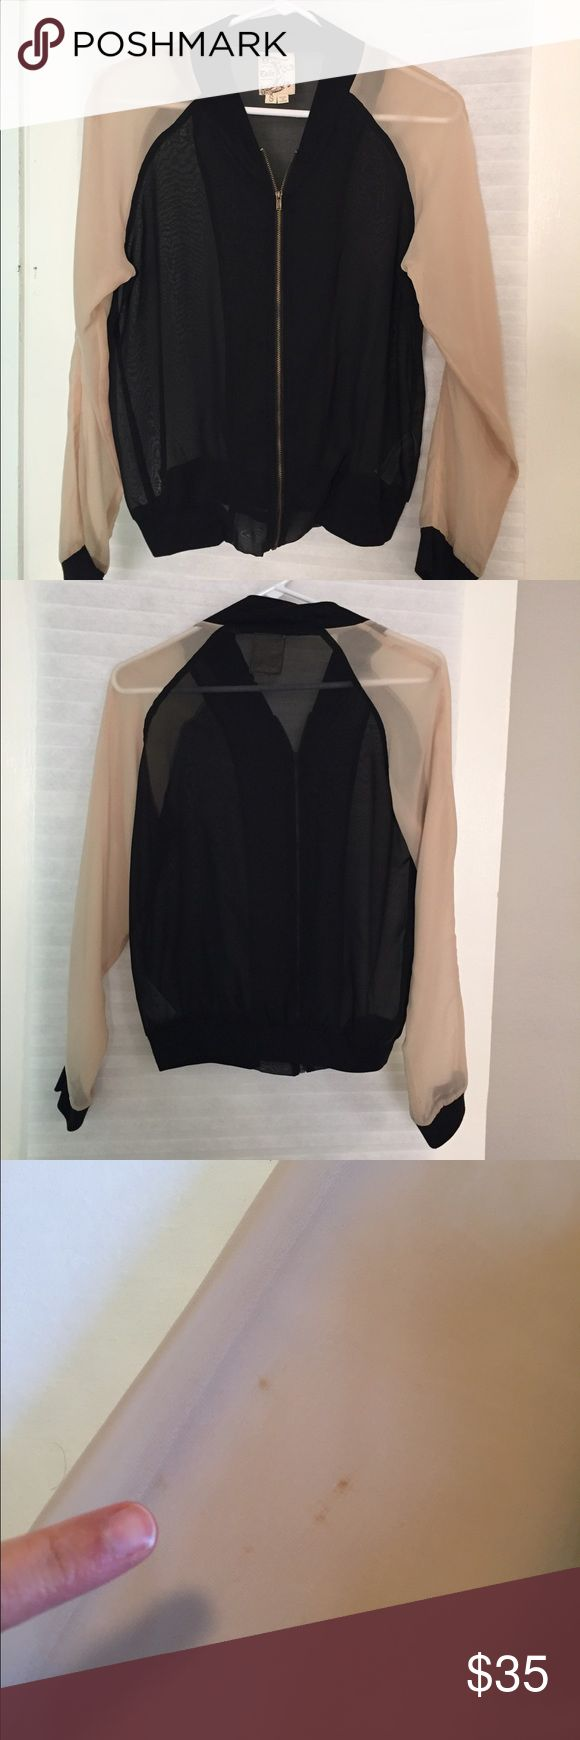 Sheer black and nude zip up jacket Brand: Tulle. Sheer black and nude zip up jacket. Small stain on sleeve. Smoke free and pet free home. Jacket can be dressed up or down! Tulle Jackets & Coats